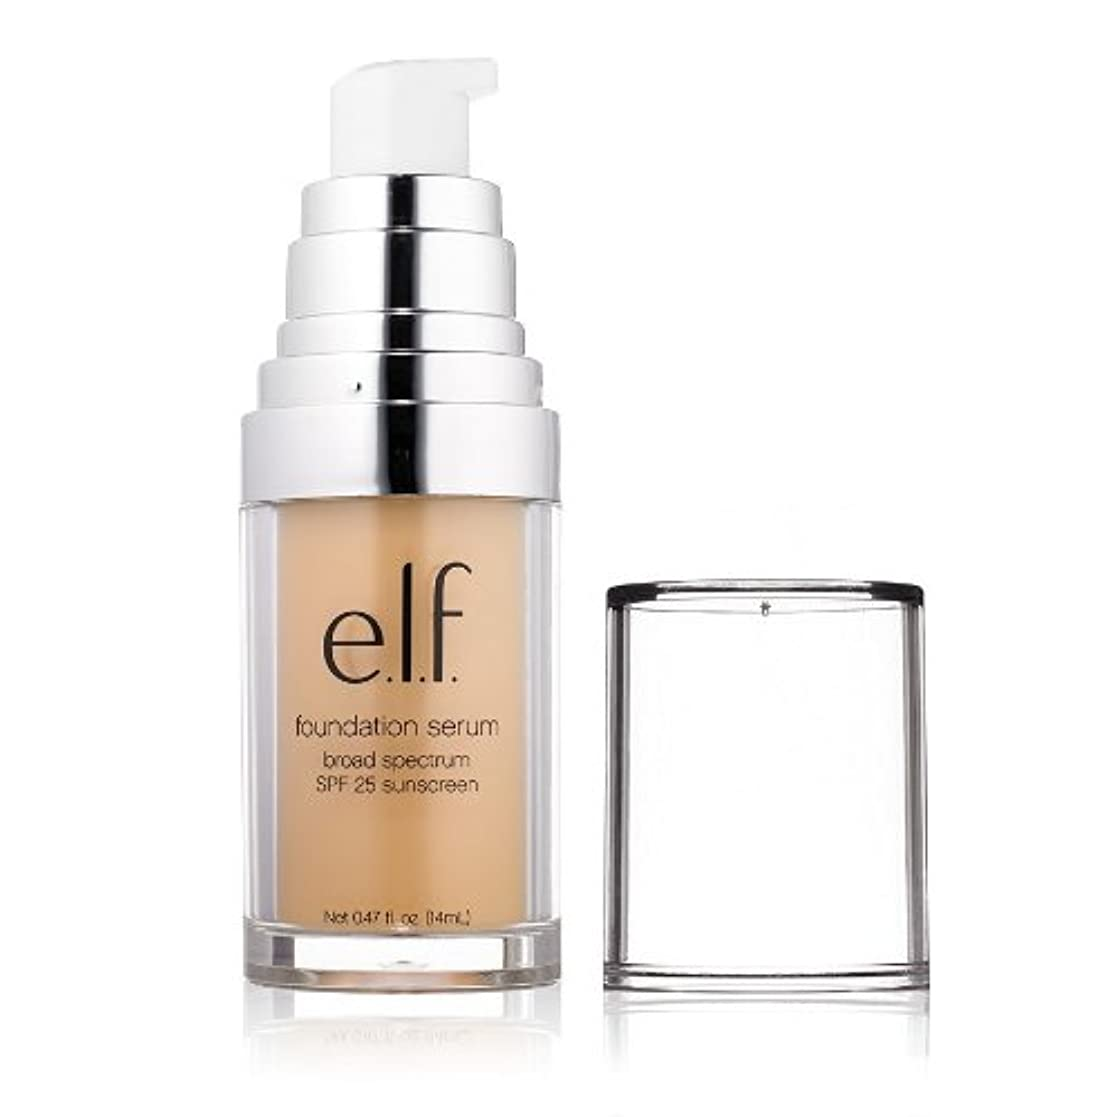 画面バラ色命令的(6 Pack) e.l.f. Beautifully Bare Foundation Serum - Fair / Light (並行輸入品)